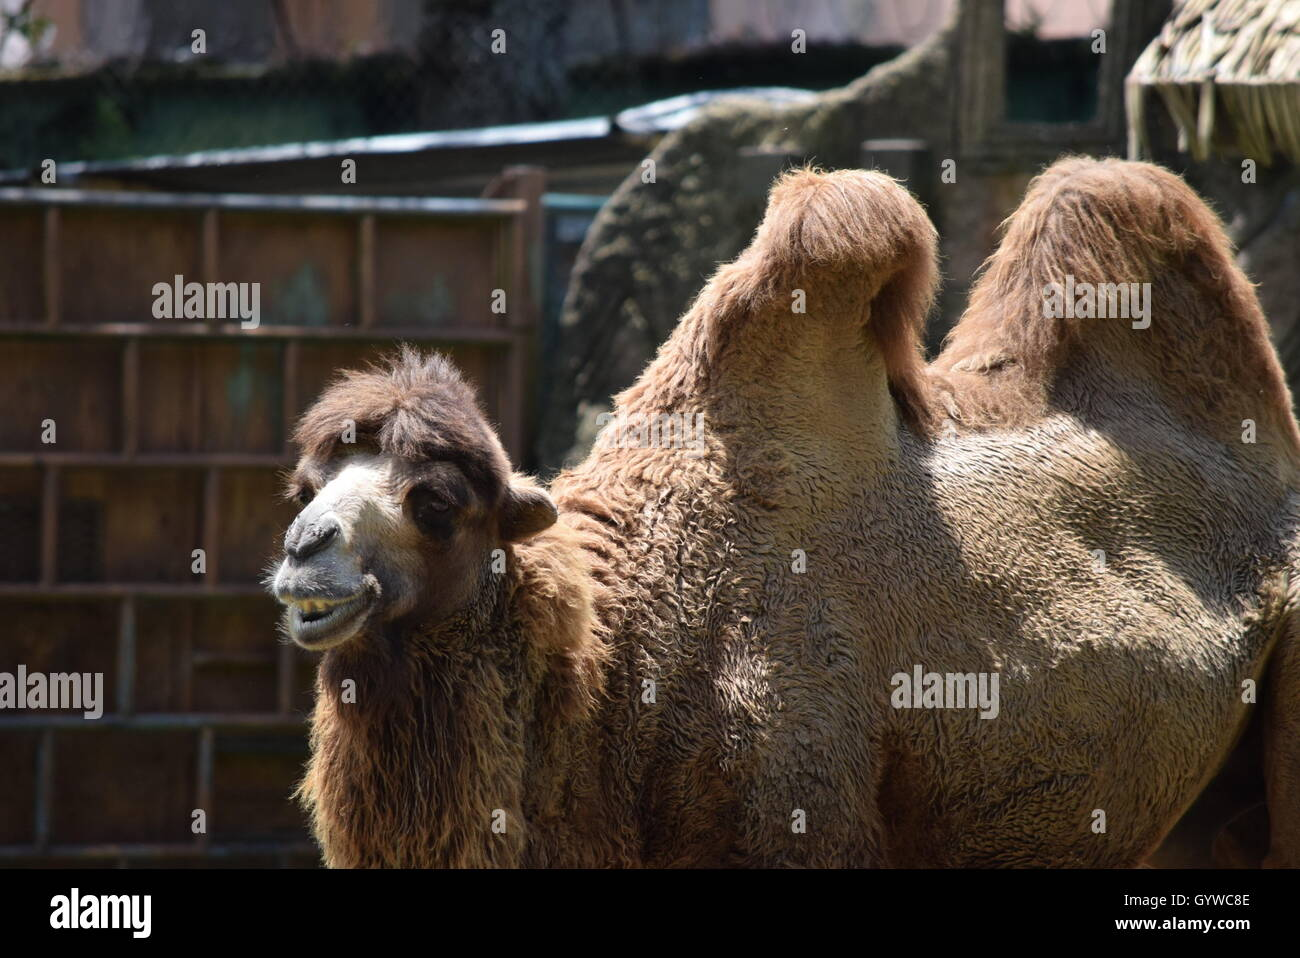 Bactrian Camel - Stock Image